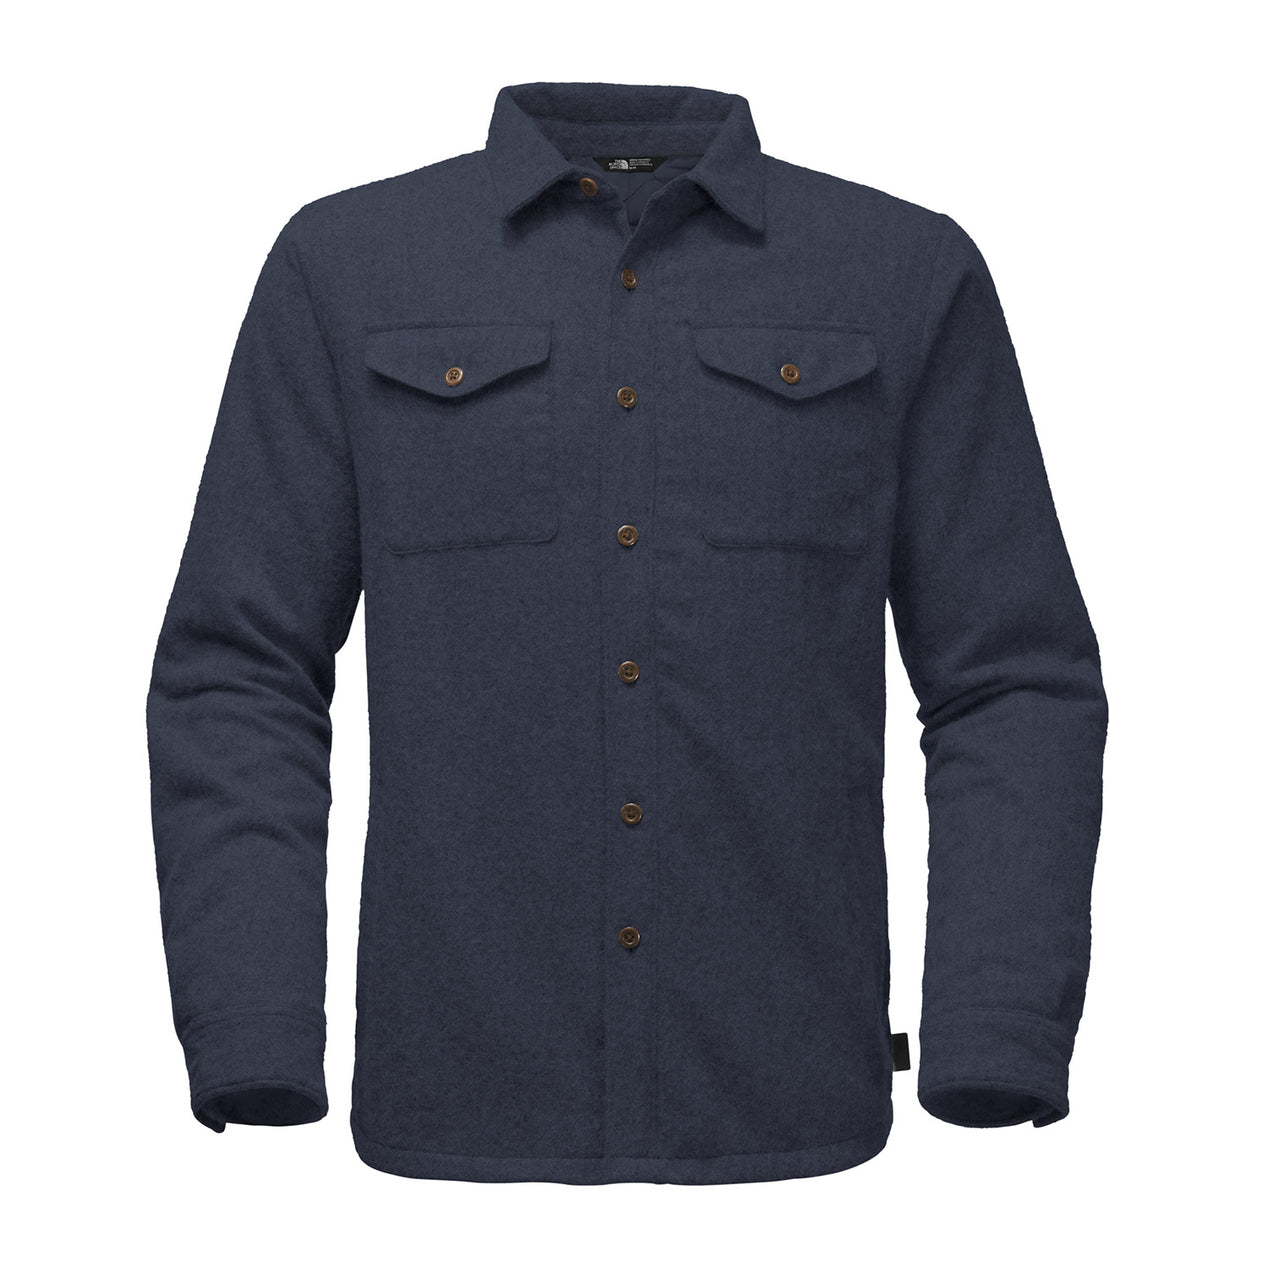 0f51f646e The North Face Men's Cabin Fever Wool Shirt